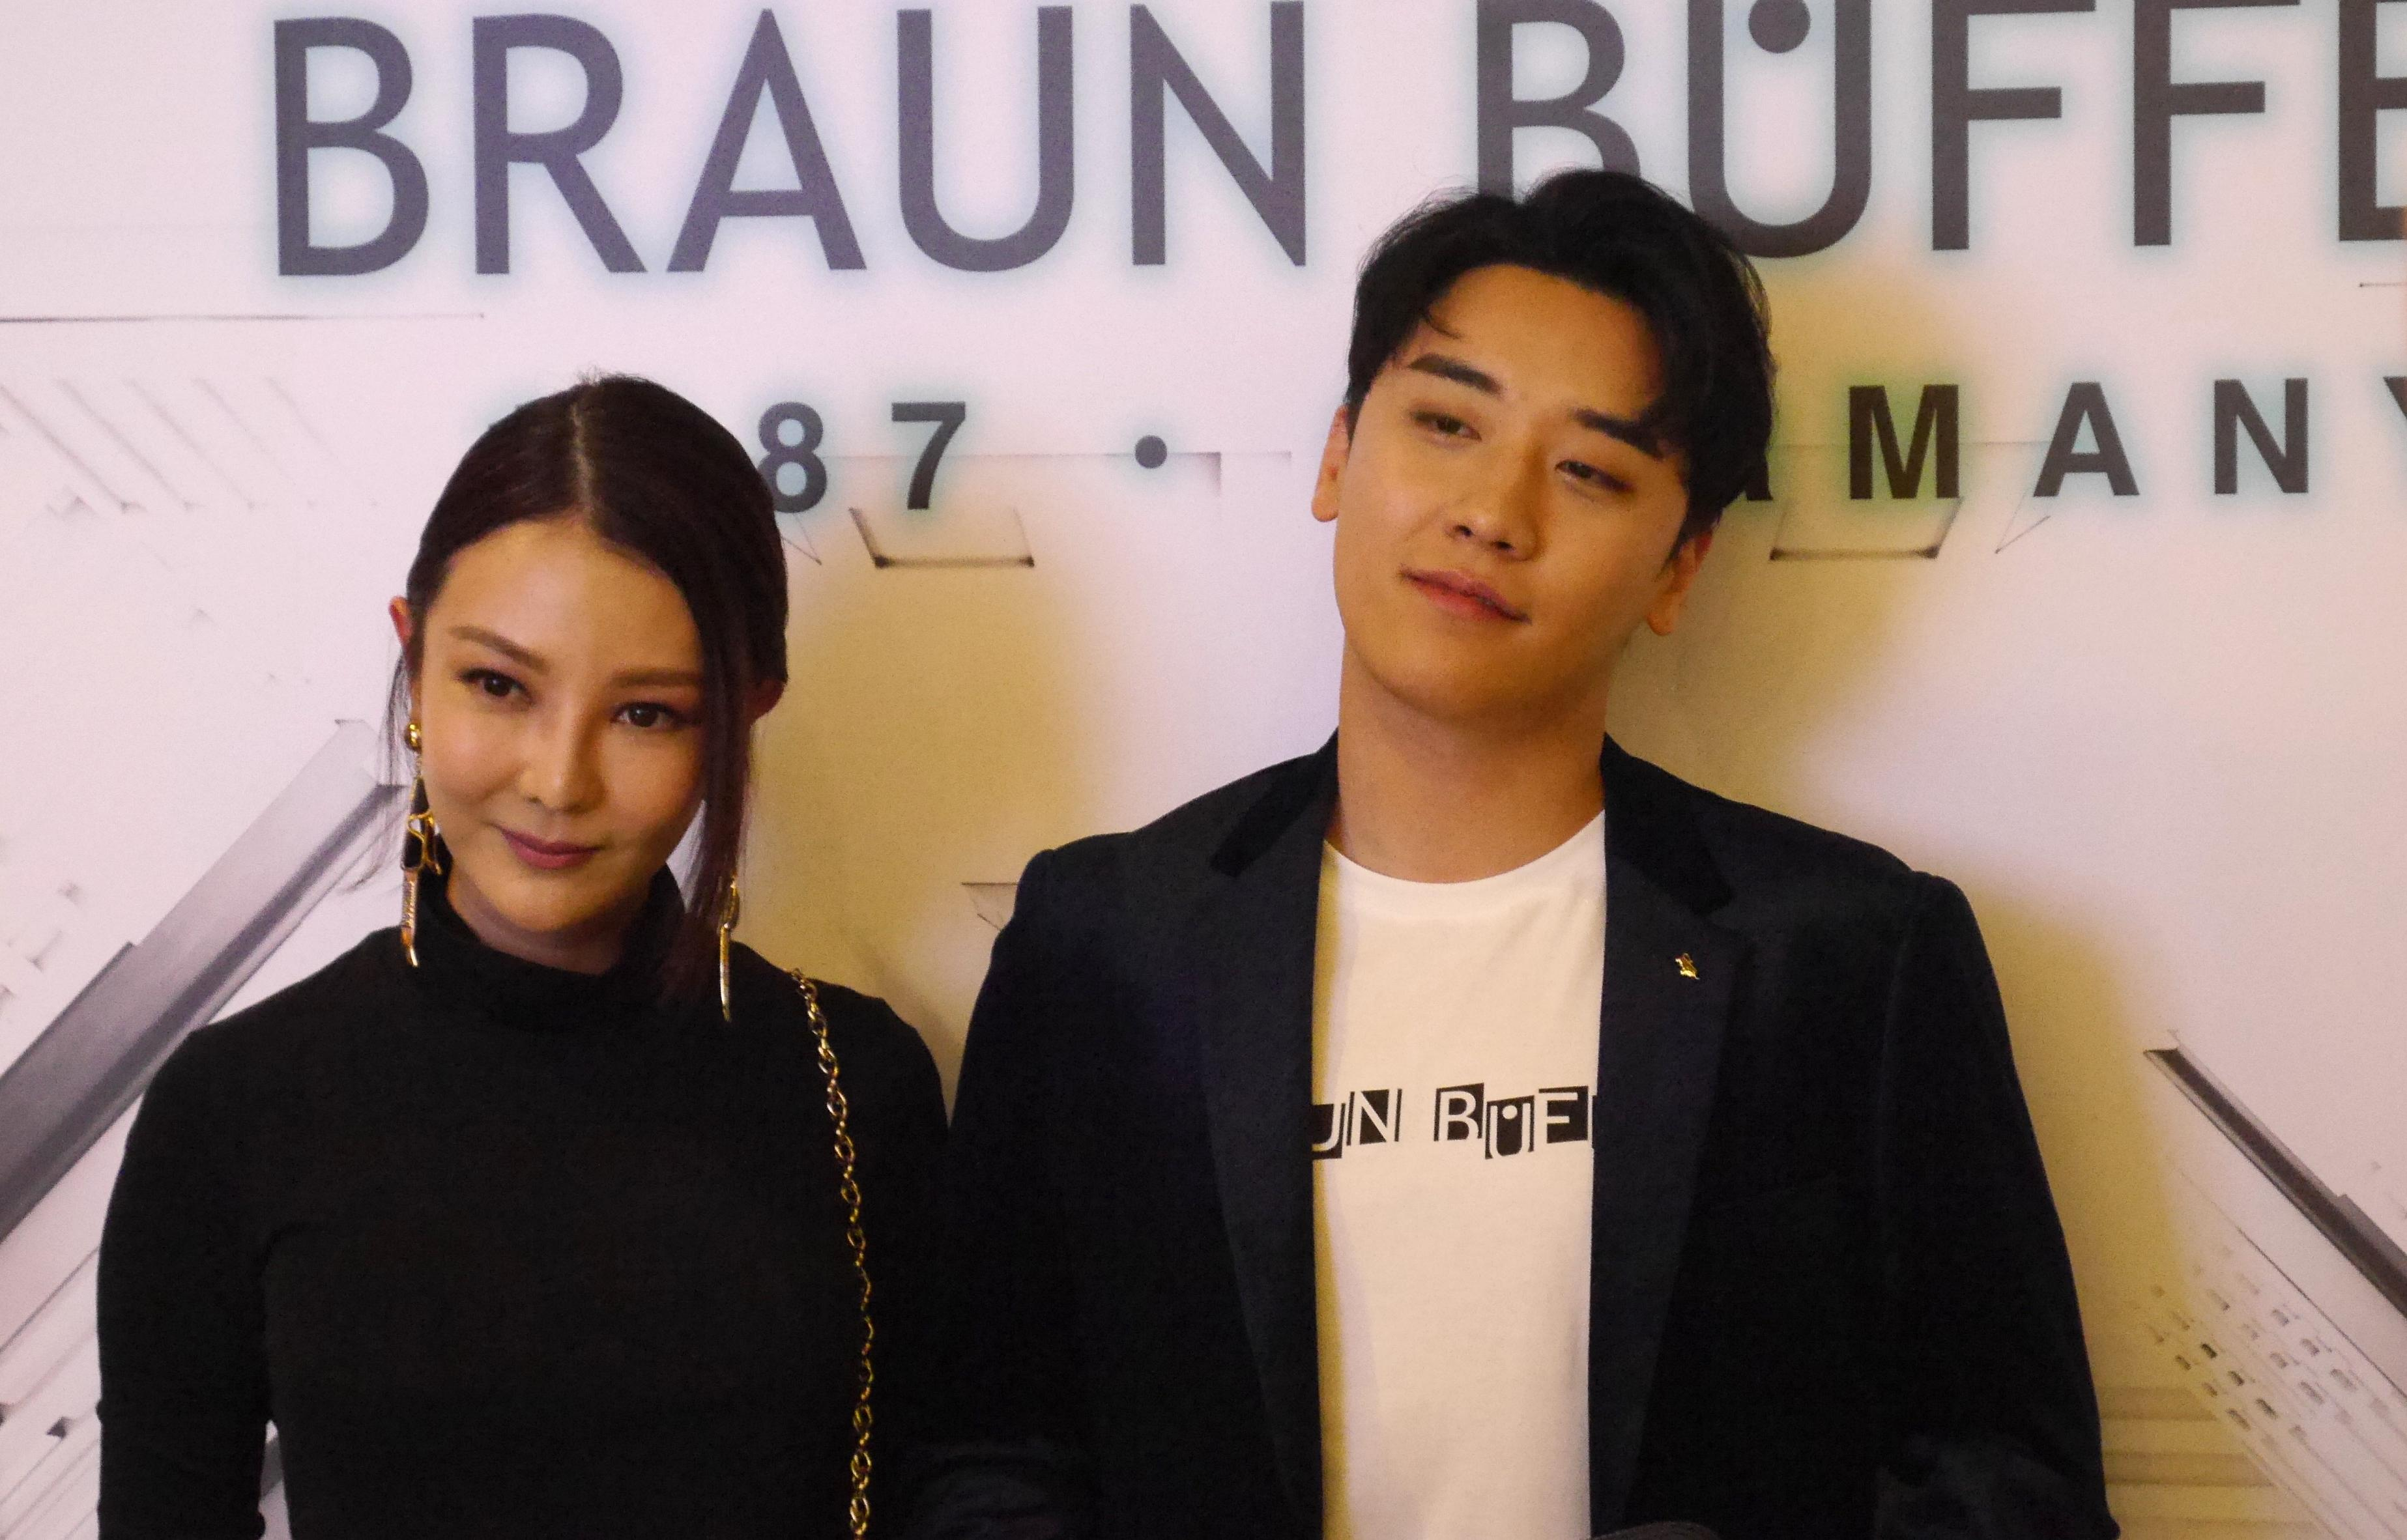 Bigbang's Seungri graces the Braun Büffel Spring/Summer 2019 launch event in Singapore